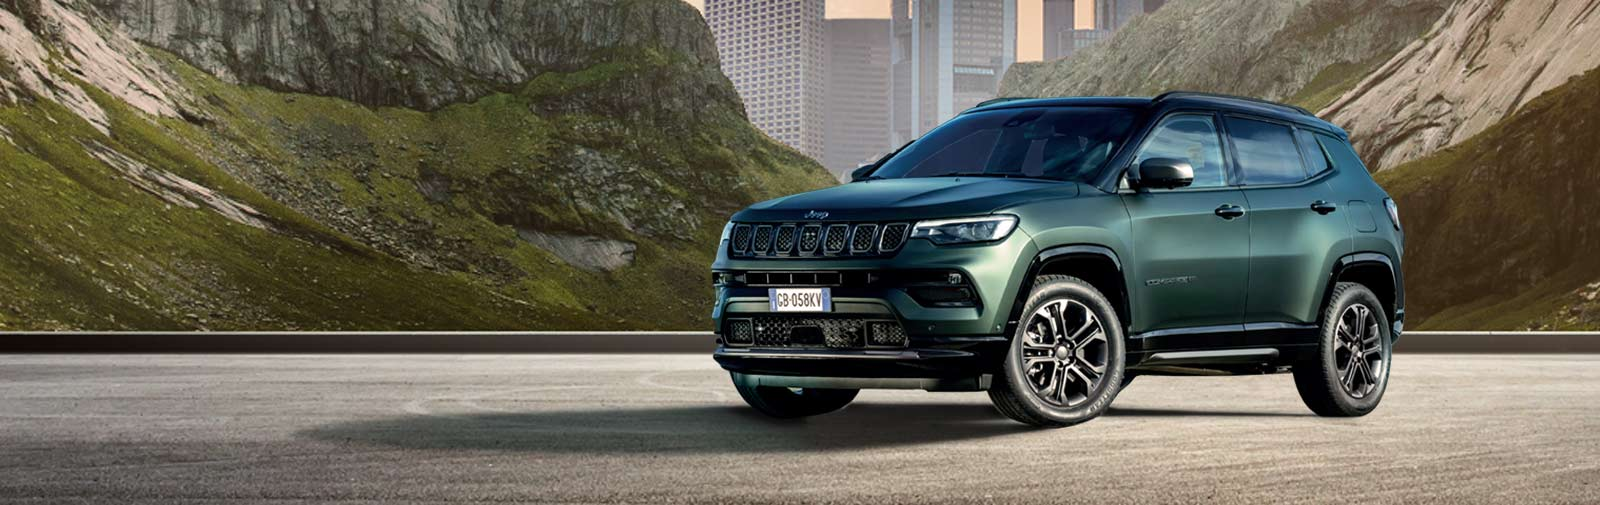 JEEP COMPASS FINANCIERING 1,99%